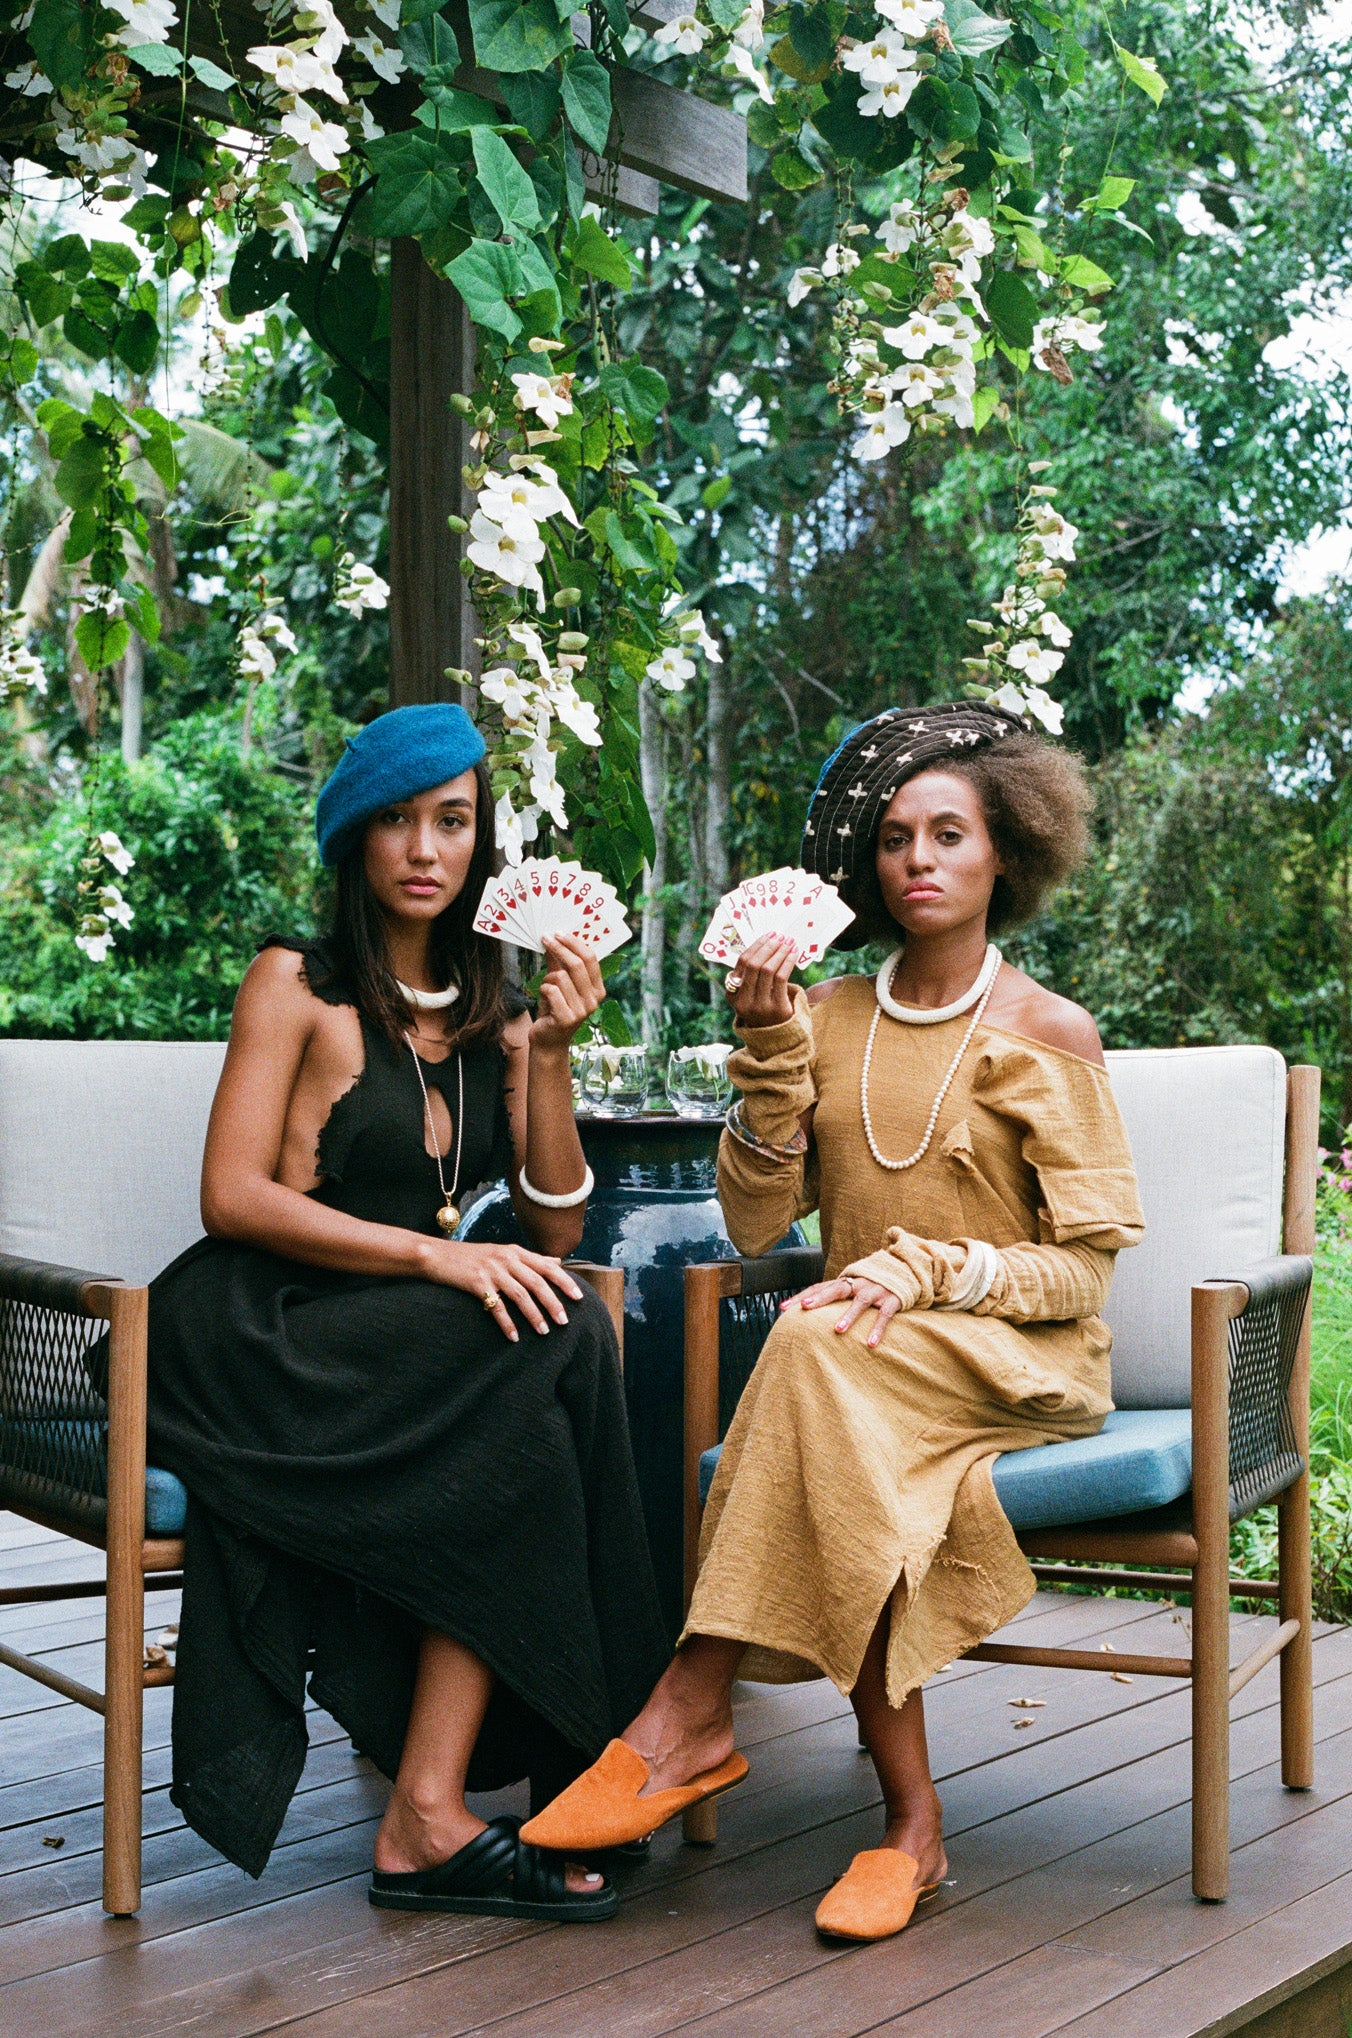 Lookbook Shot Amira and Blaine Front